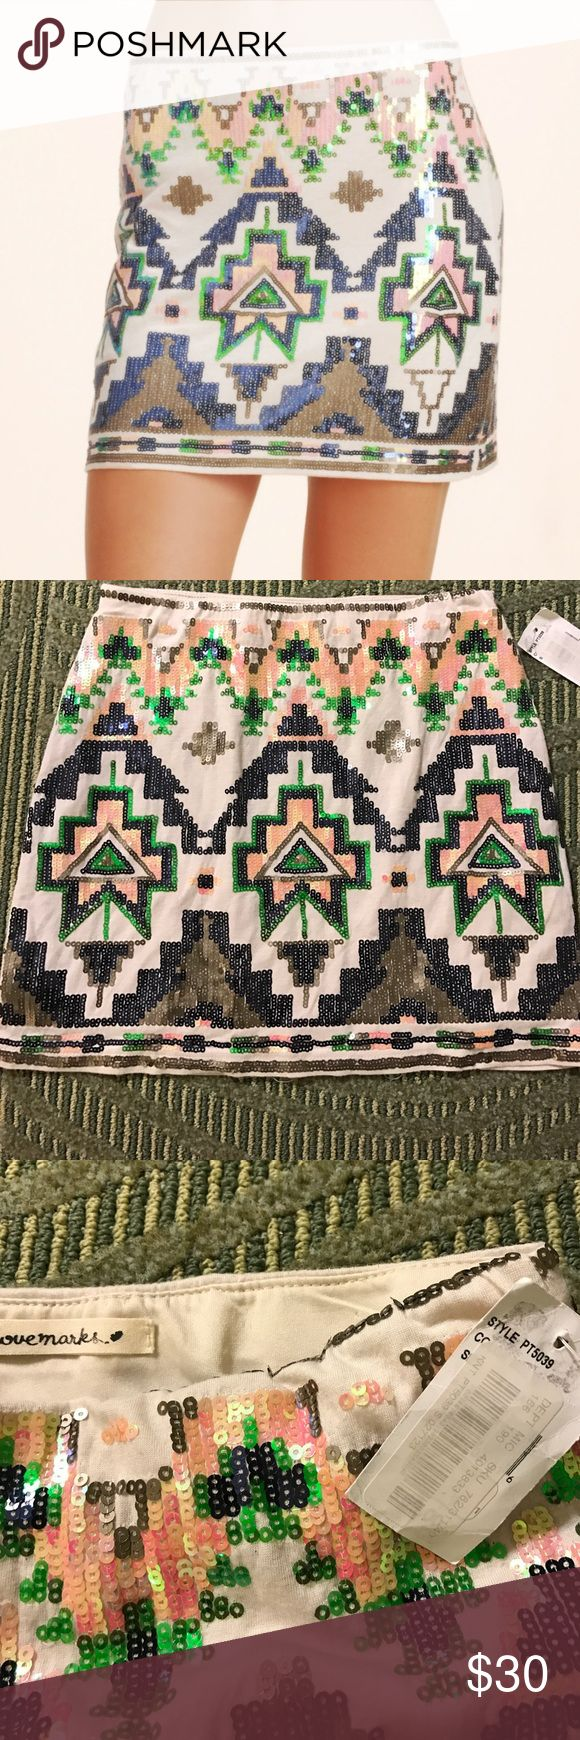 🍑NWT LOVEMARKS🍑AZTEC SEQUIN SKIRT🍑 This is a stunning mini by the brand love marks sold Dillard's. New with tag no flaws no missing sequins. Pull on. You can wear it with tights leggings bear legs however you please rock it with pride. Fully lined Shell is 100% rayon lining is 100% polyester. Rubber waist. Waist 12 1/2 inches without stretch, hips 15 1/2 without stretch, length 13 1/2 Skirts Mini